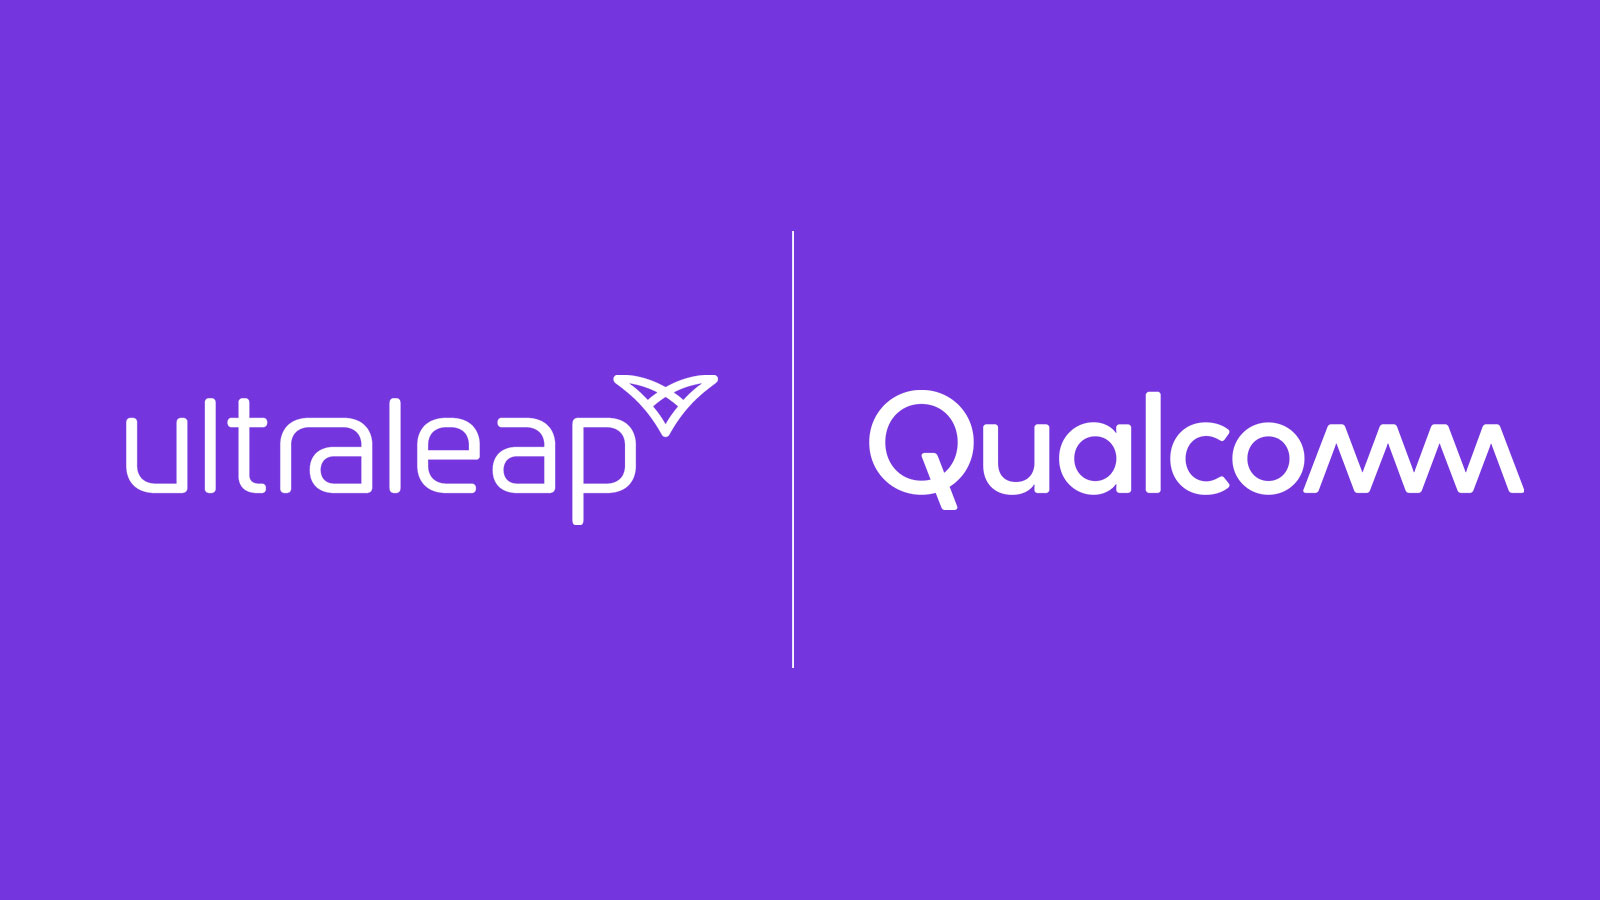 Ultraleap and Qualcomm logos